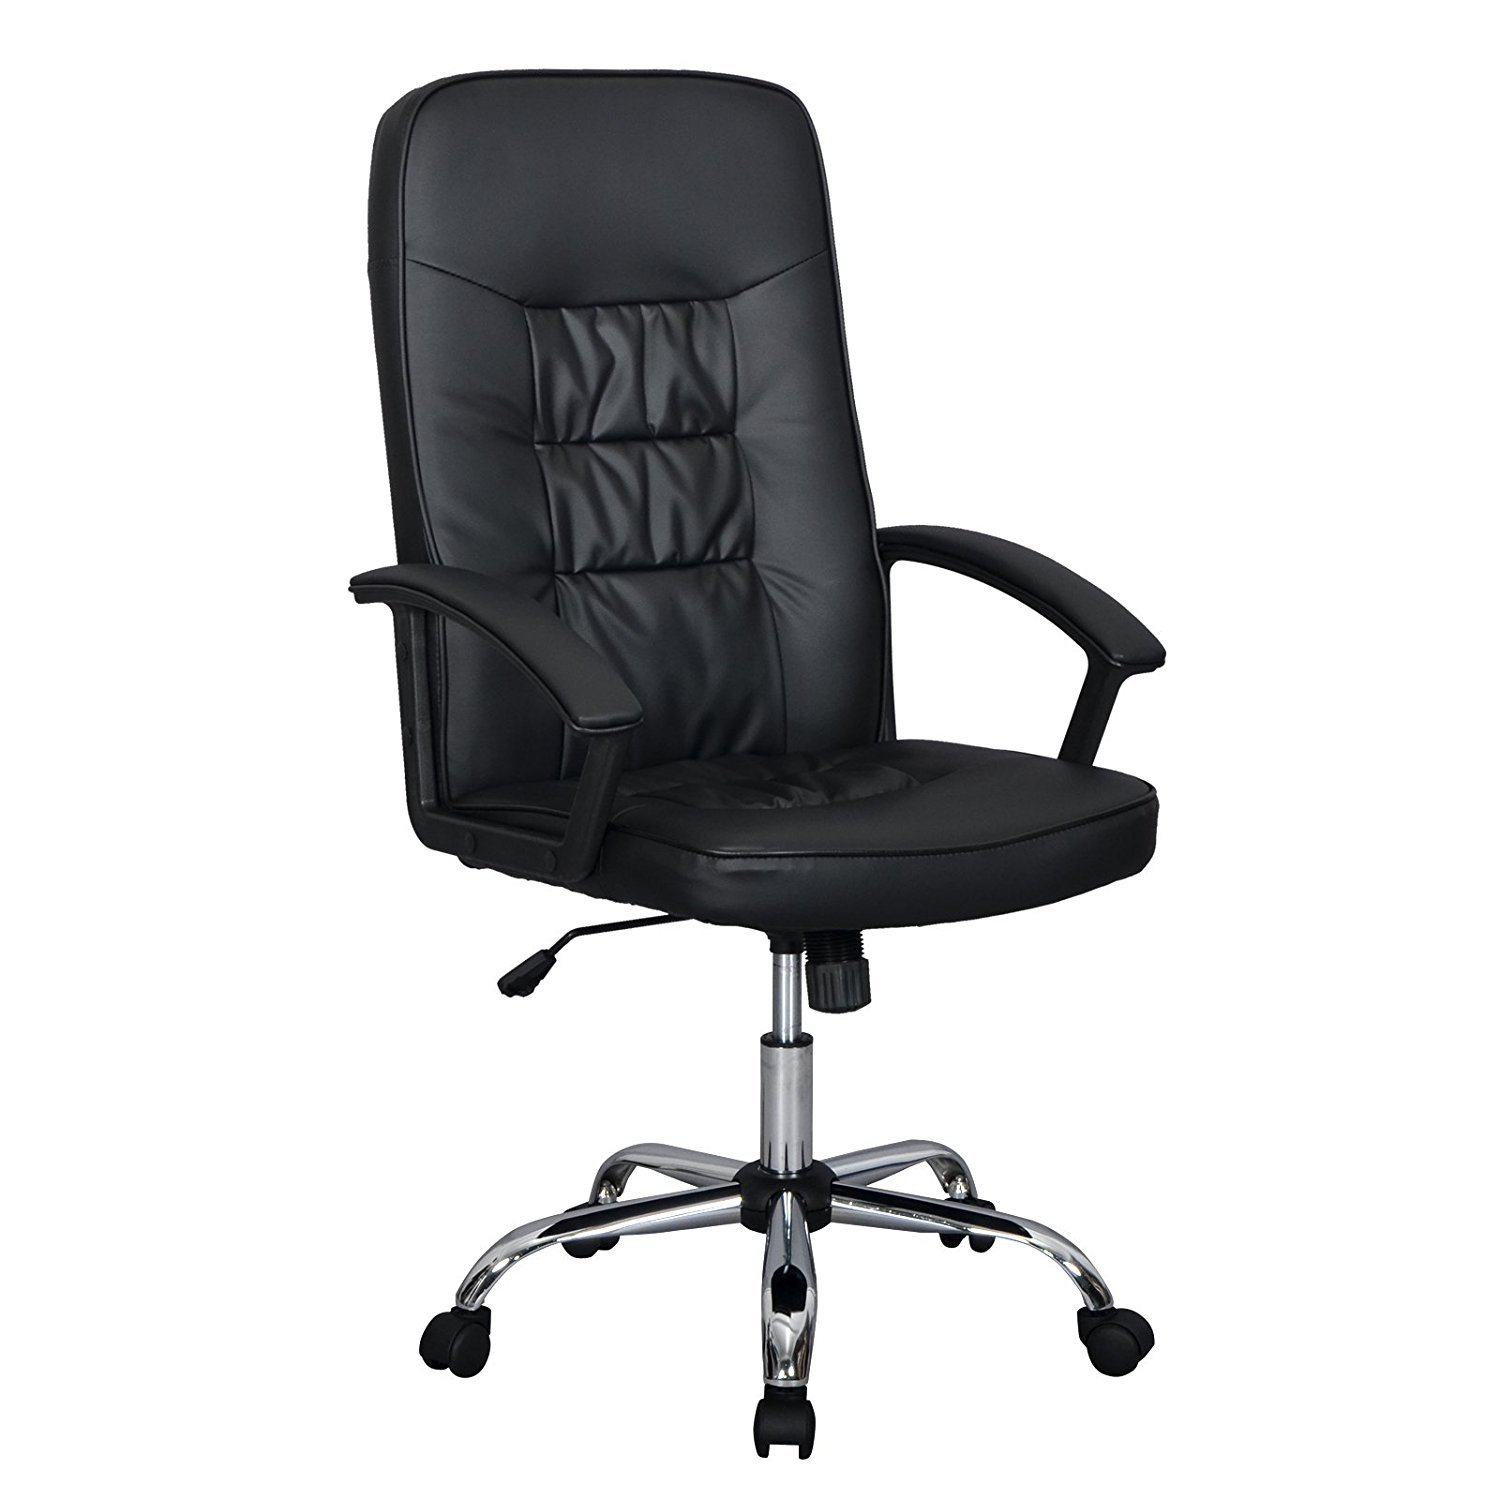 PayLesshere High Back Executive Office PU Leather Ergonomic Chair Computer Desk